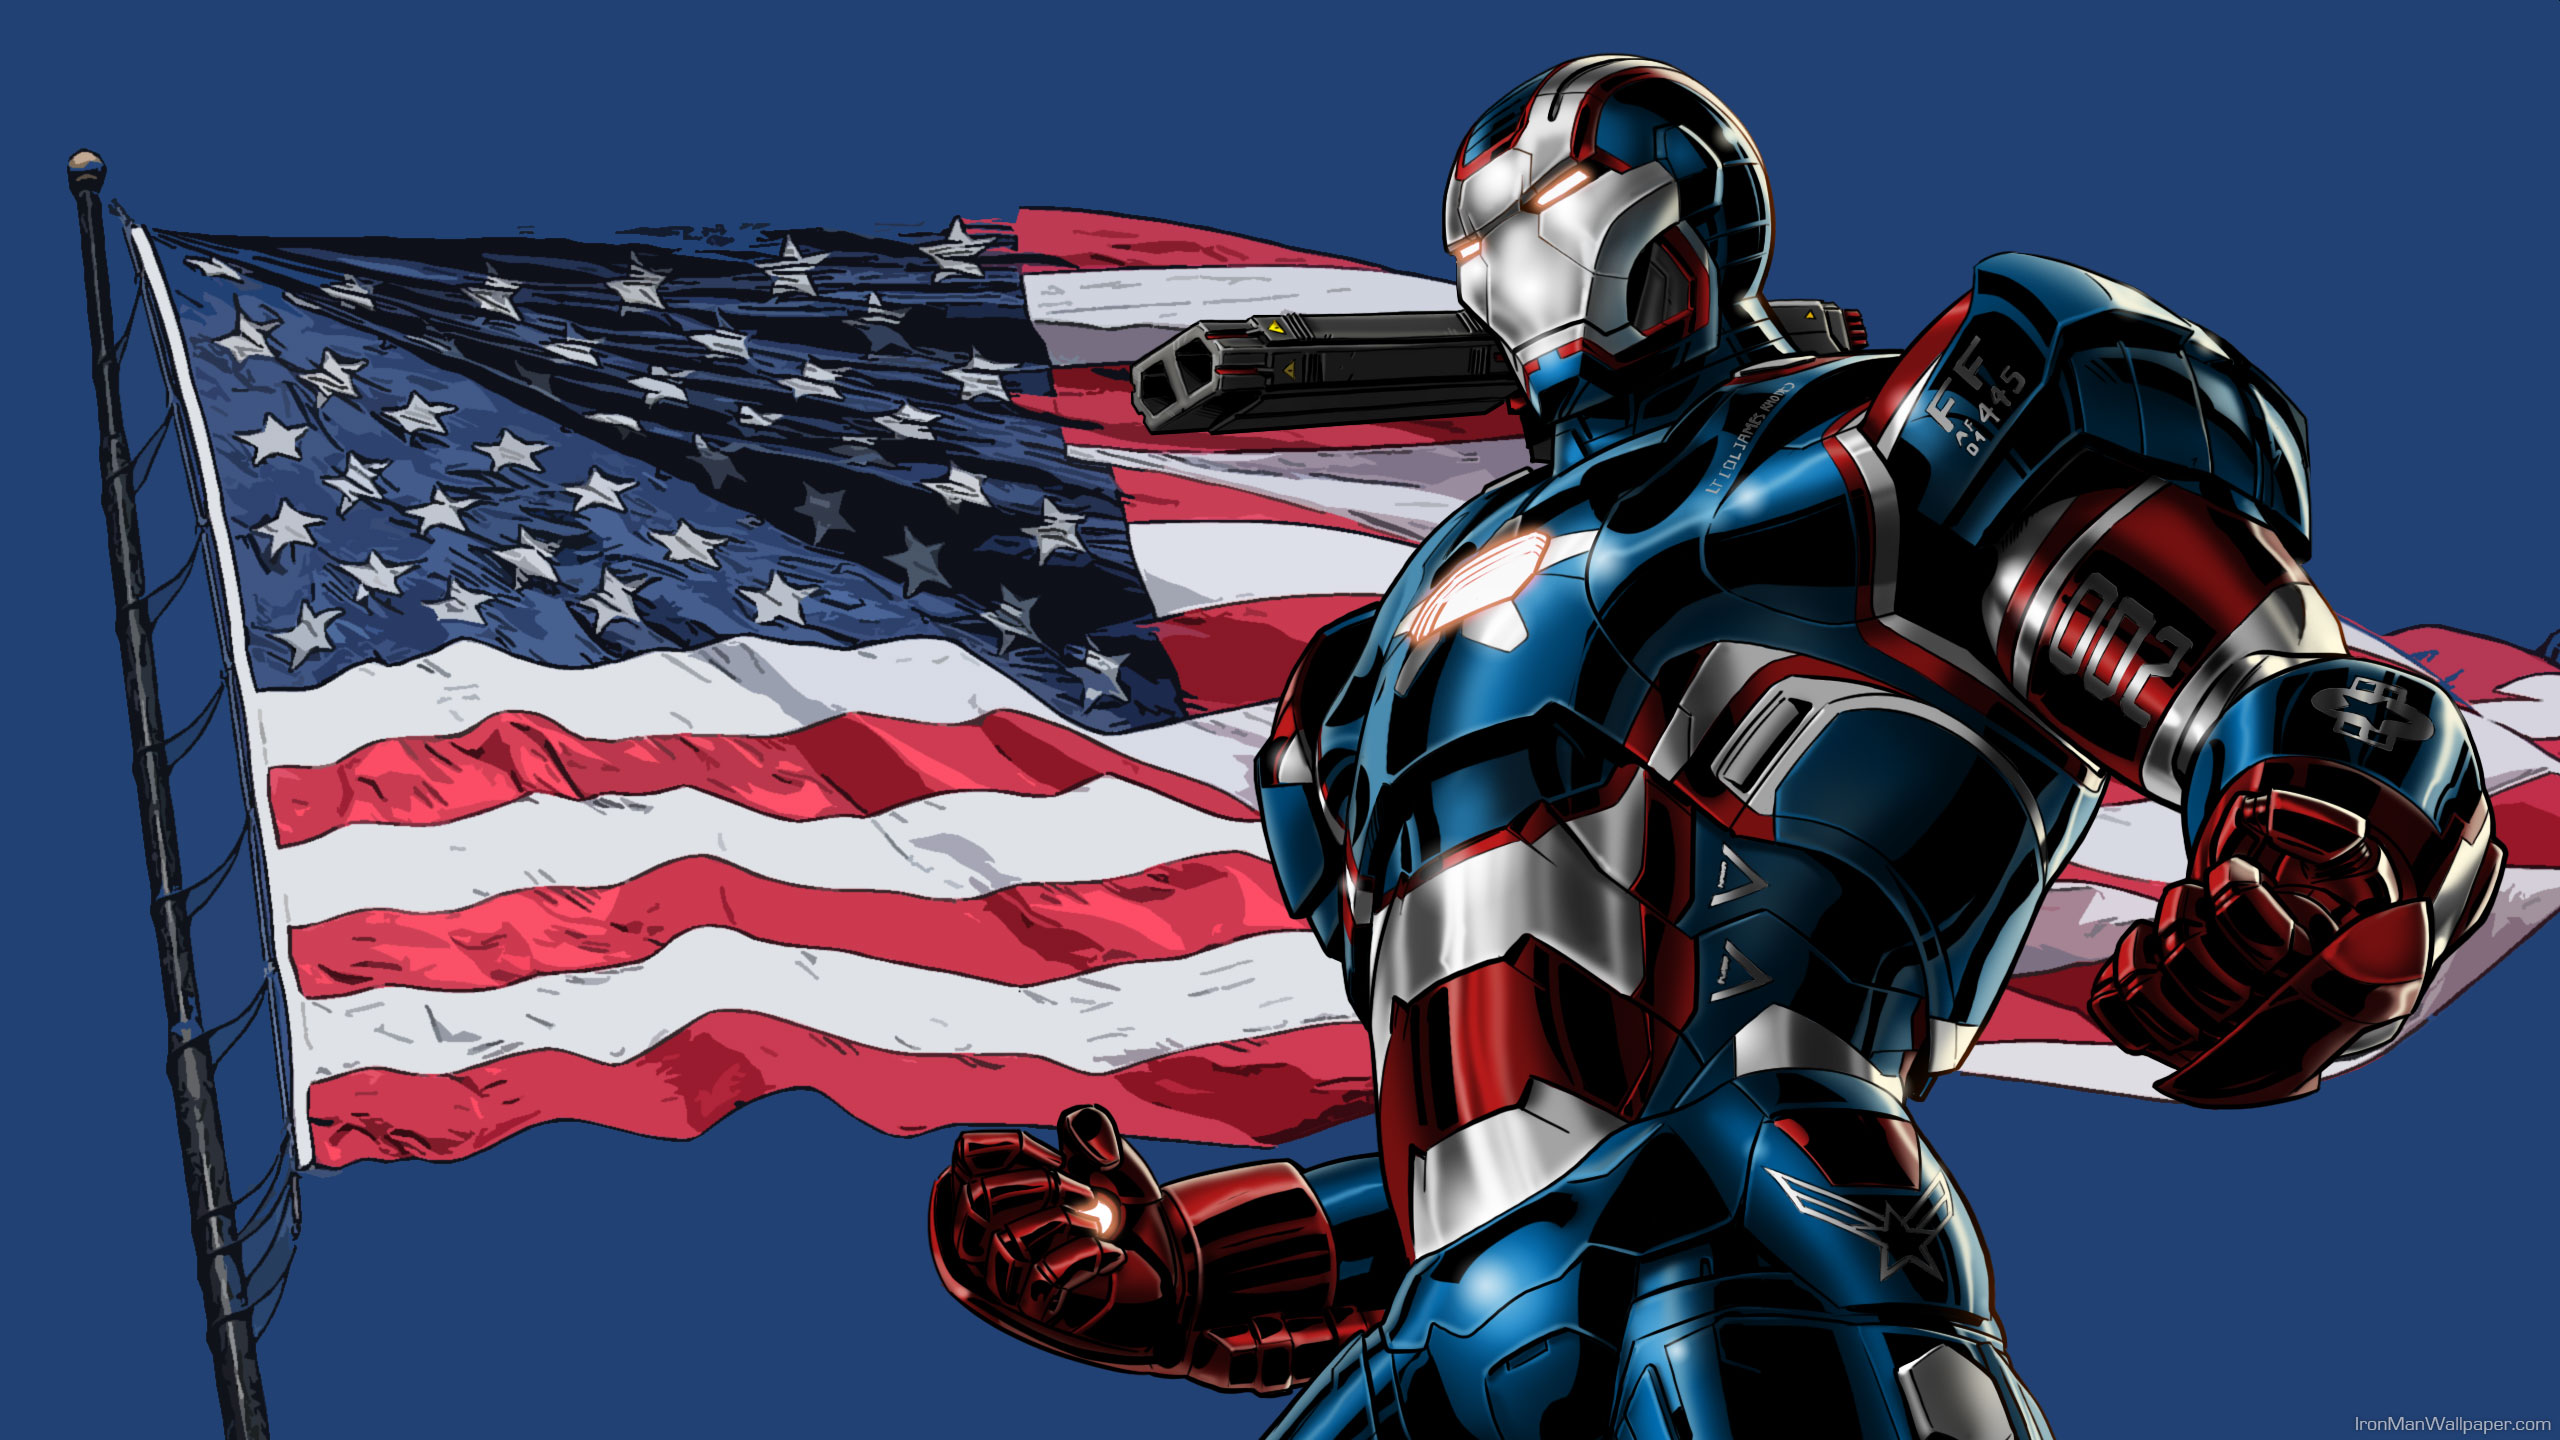 iron patriot hero usa flag